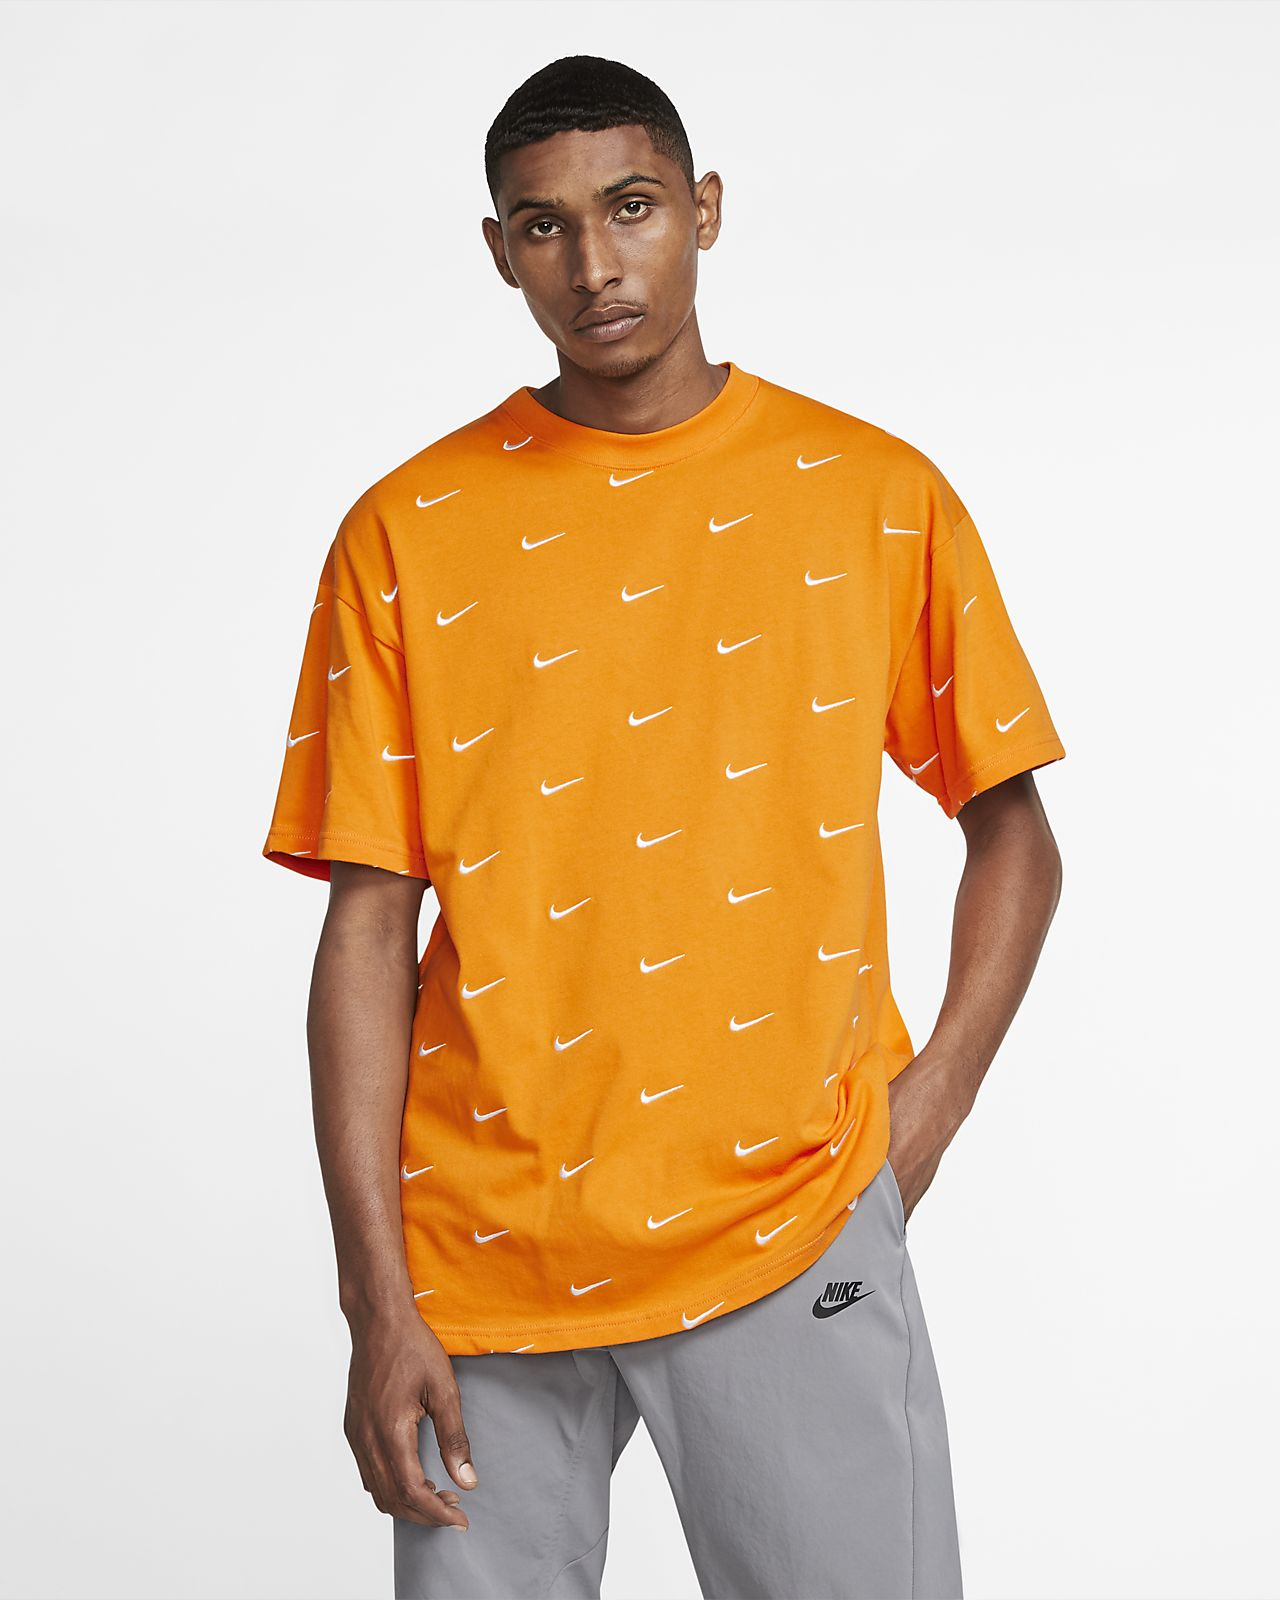 tee shirt nike orange homme